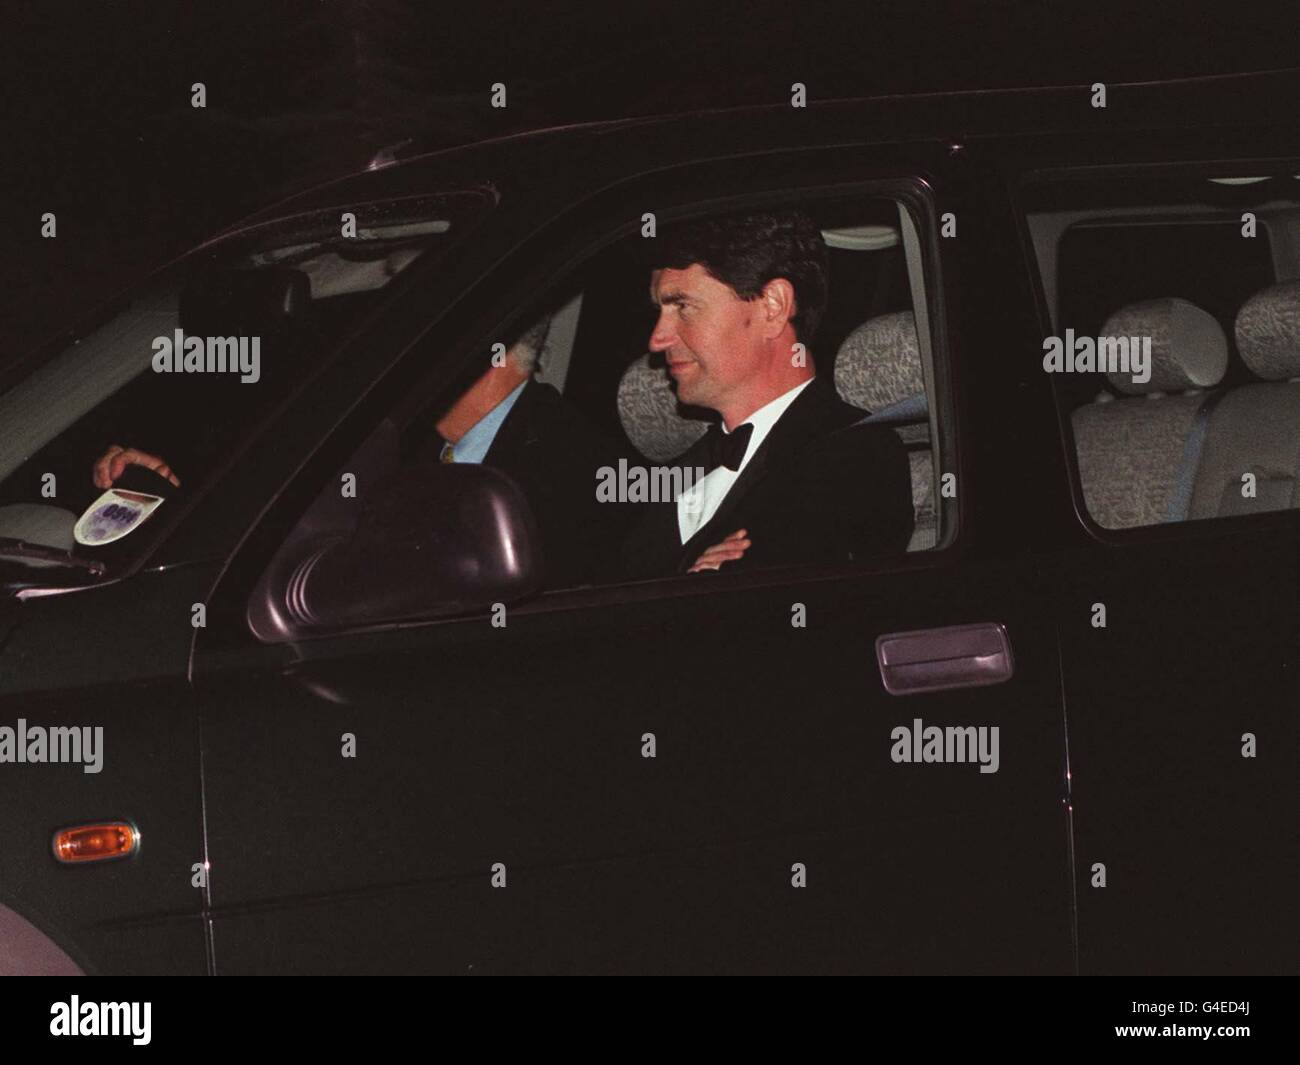 PA NEWS 31/7/98 CAPTAIN TIM LAURENCE ARRIVES AT THE PRINCE OF WALES' GLOUCESTERSHIRE HOME, HIGHGROVE, WHERE HIS Stock Photo